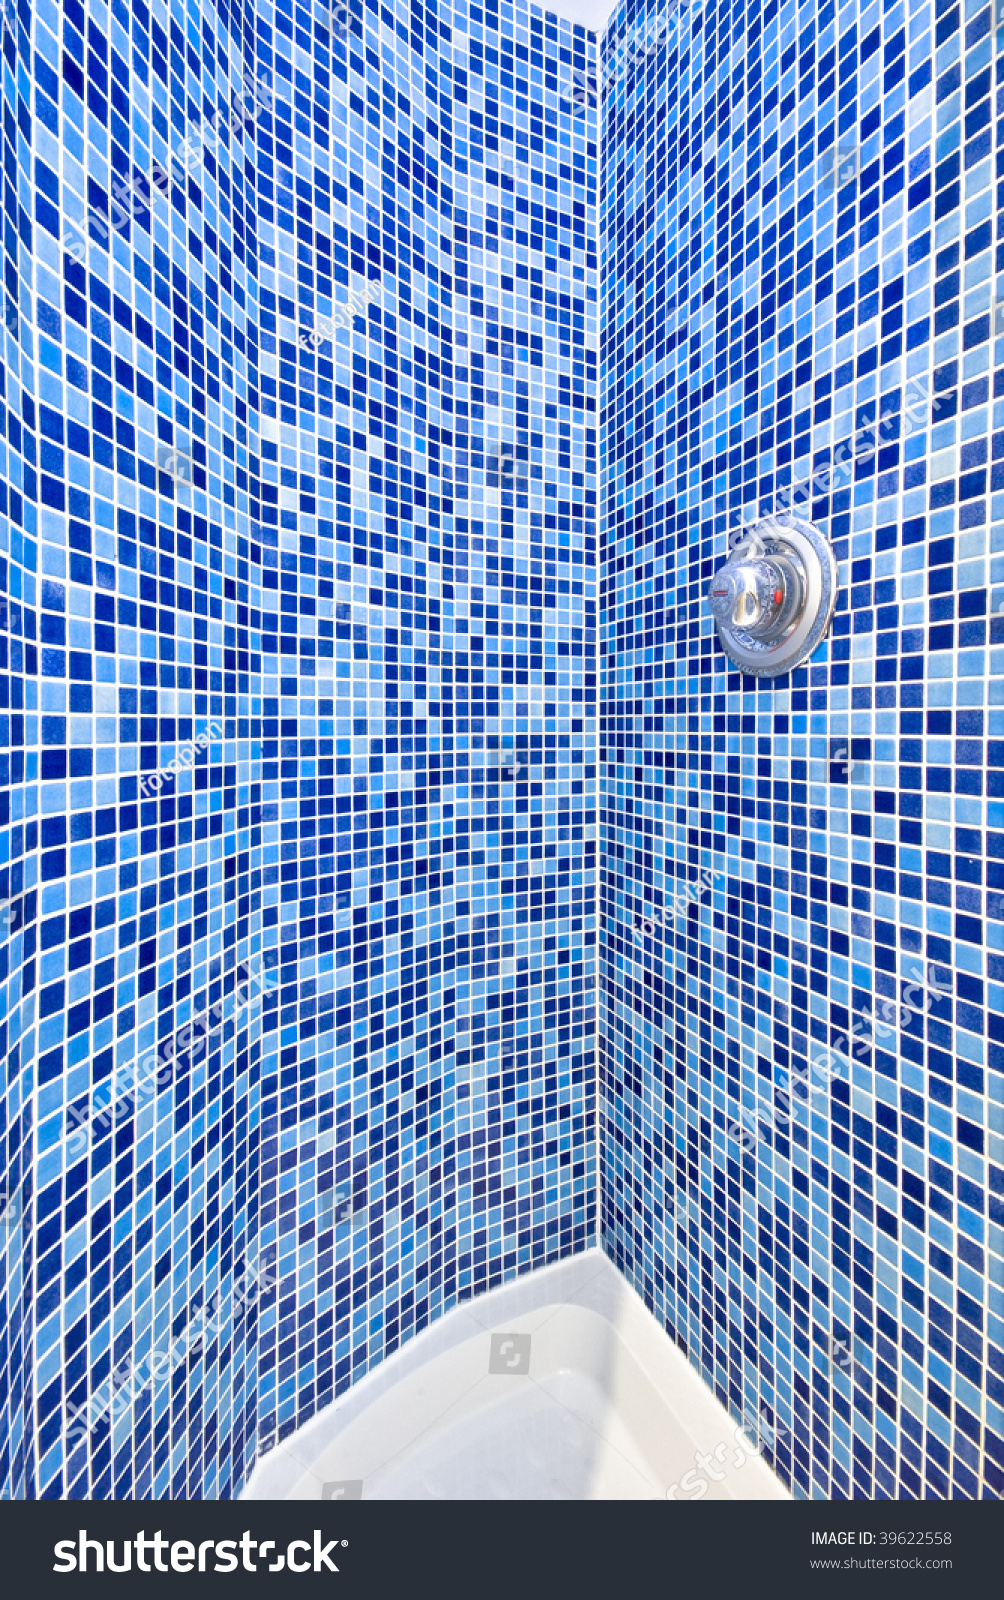 Detail Mosaic Tiled Shower Room Stock Photo (Download Now) 39622558 ...